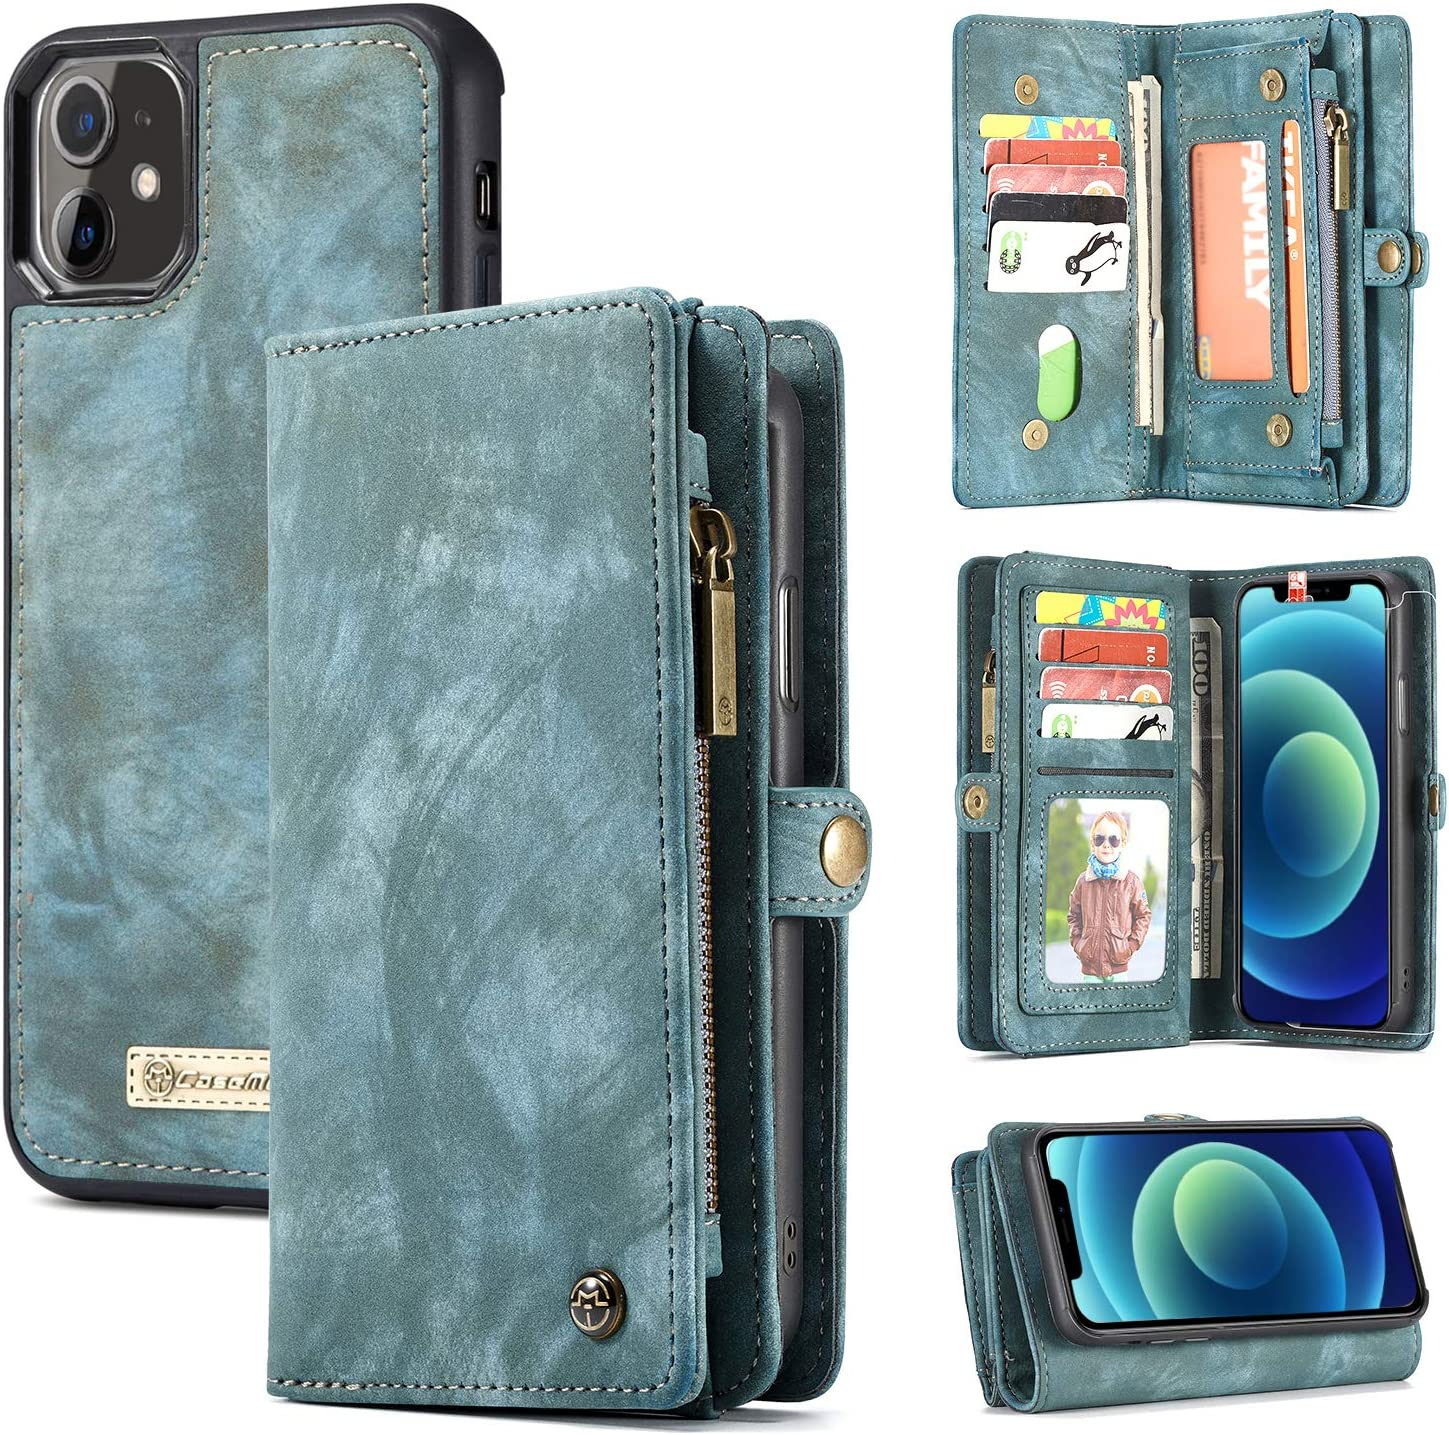 Zttopo Wallet Case Compatible with iPhone 12/12 Pro, 2 in 1 Leather Zipper Detachable Magnetic 11 Card Slots Card Slots with Screen Protector for iPhone Case Wallet 6.1 Inch (Blue-Green)